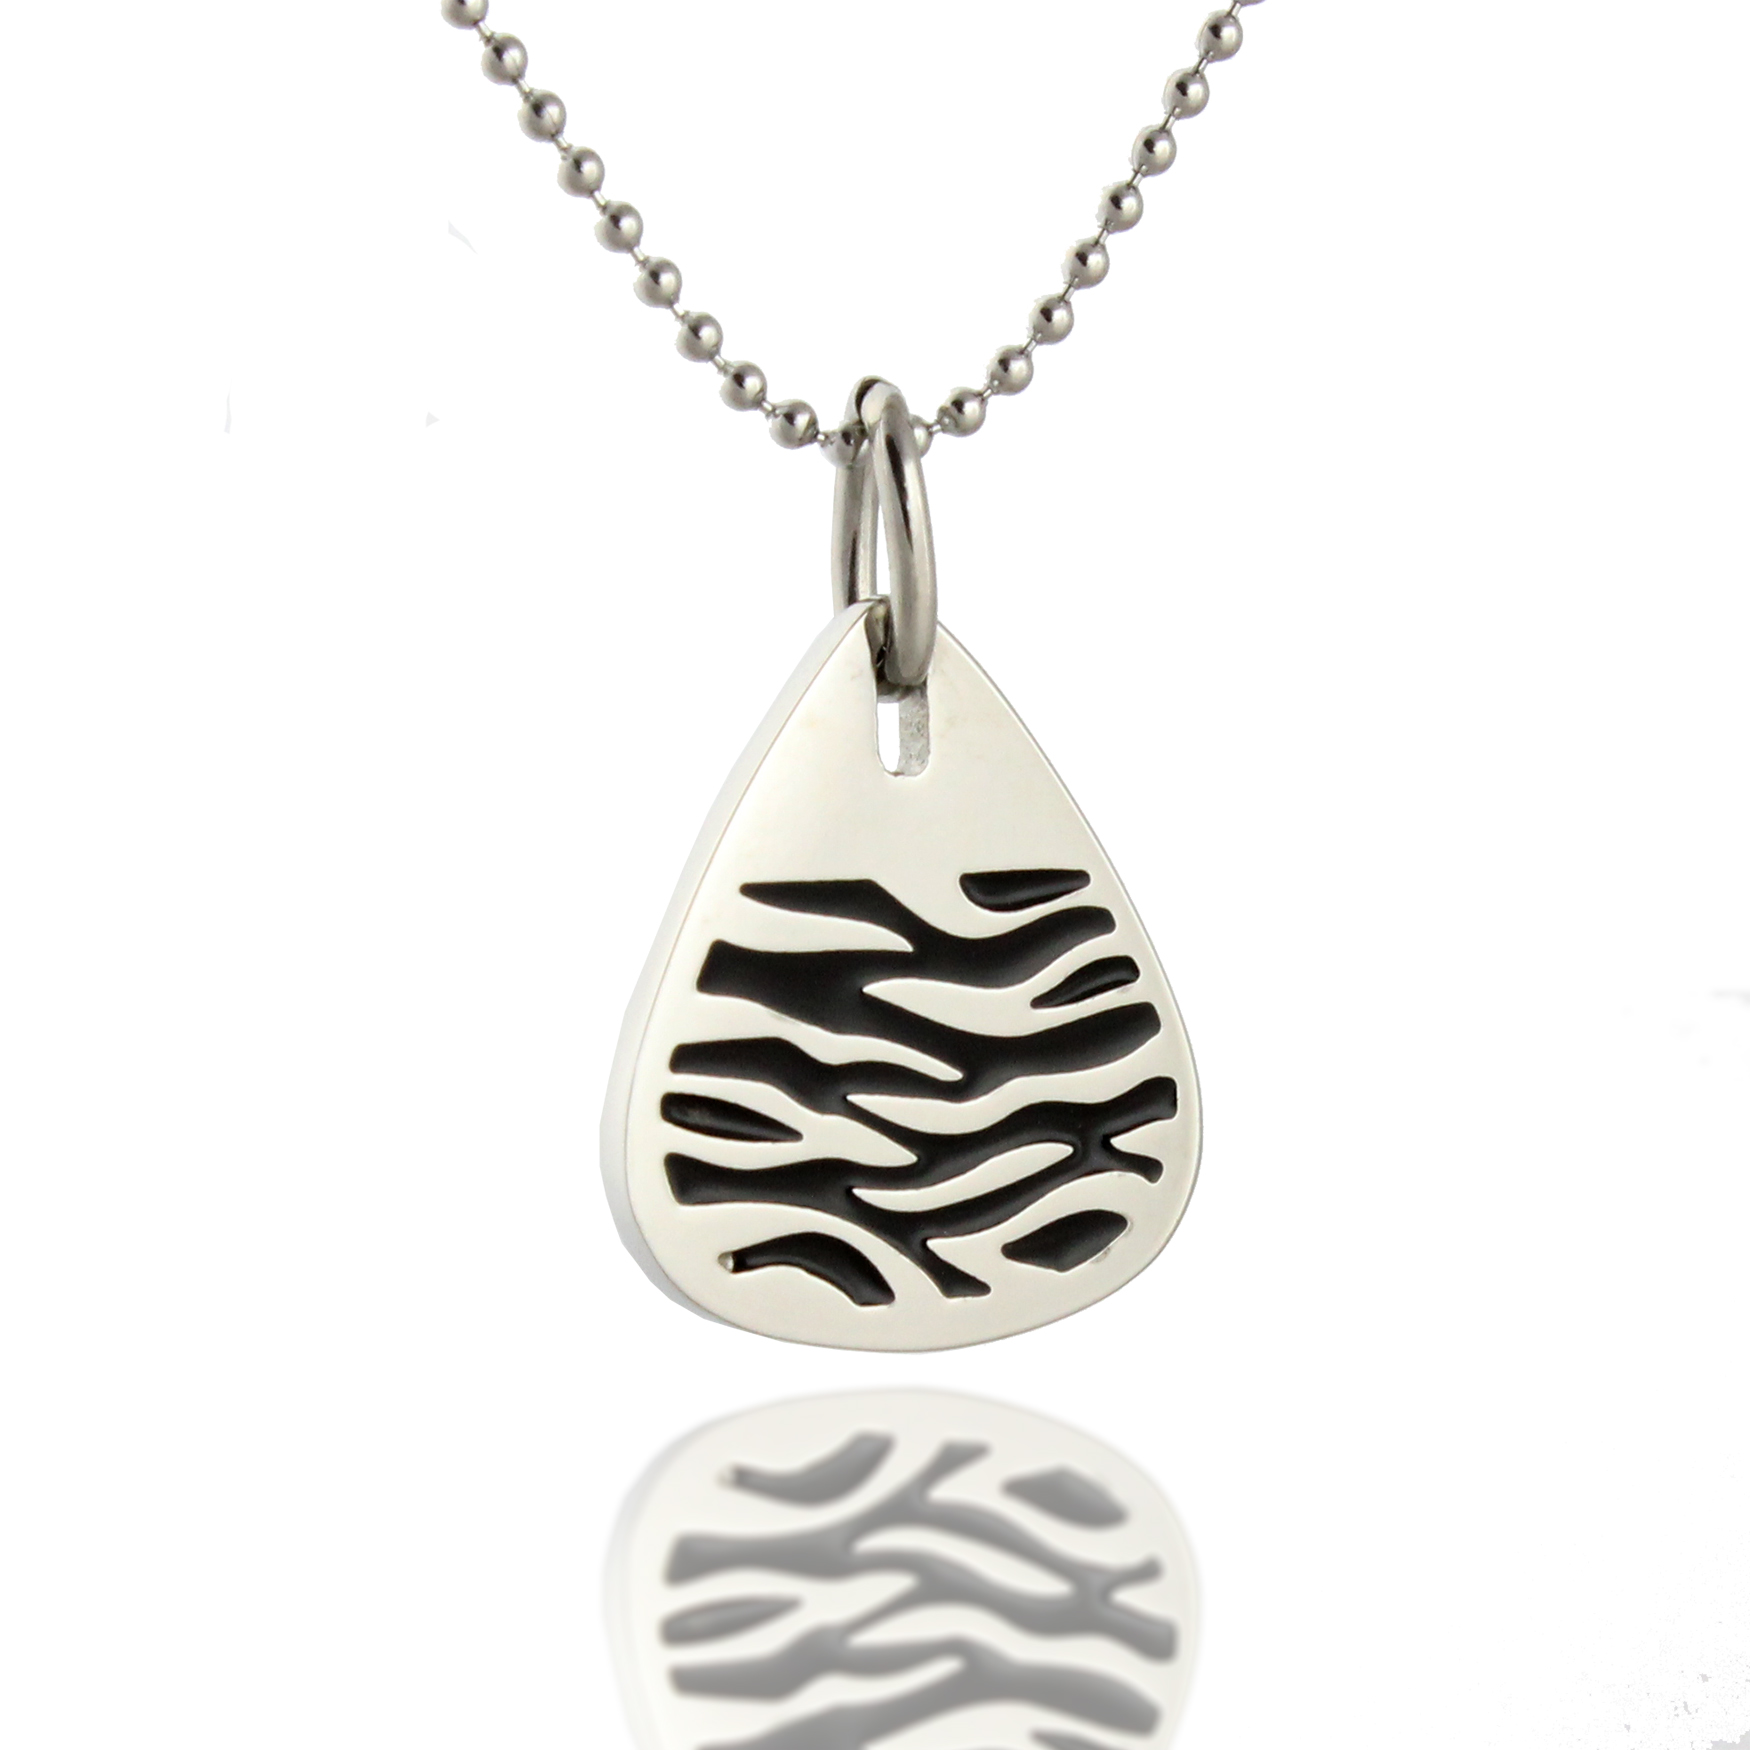 316L Stainless Steel and Black Epoxy Tiger Print Pendant Necklace, 18 inch Chain